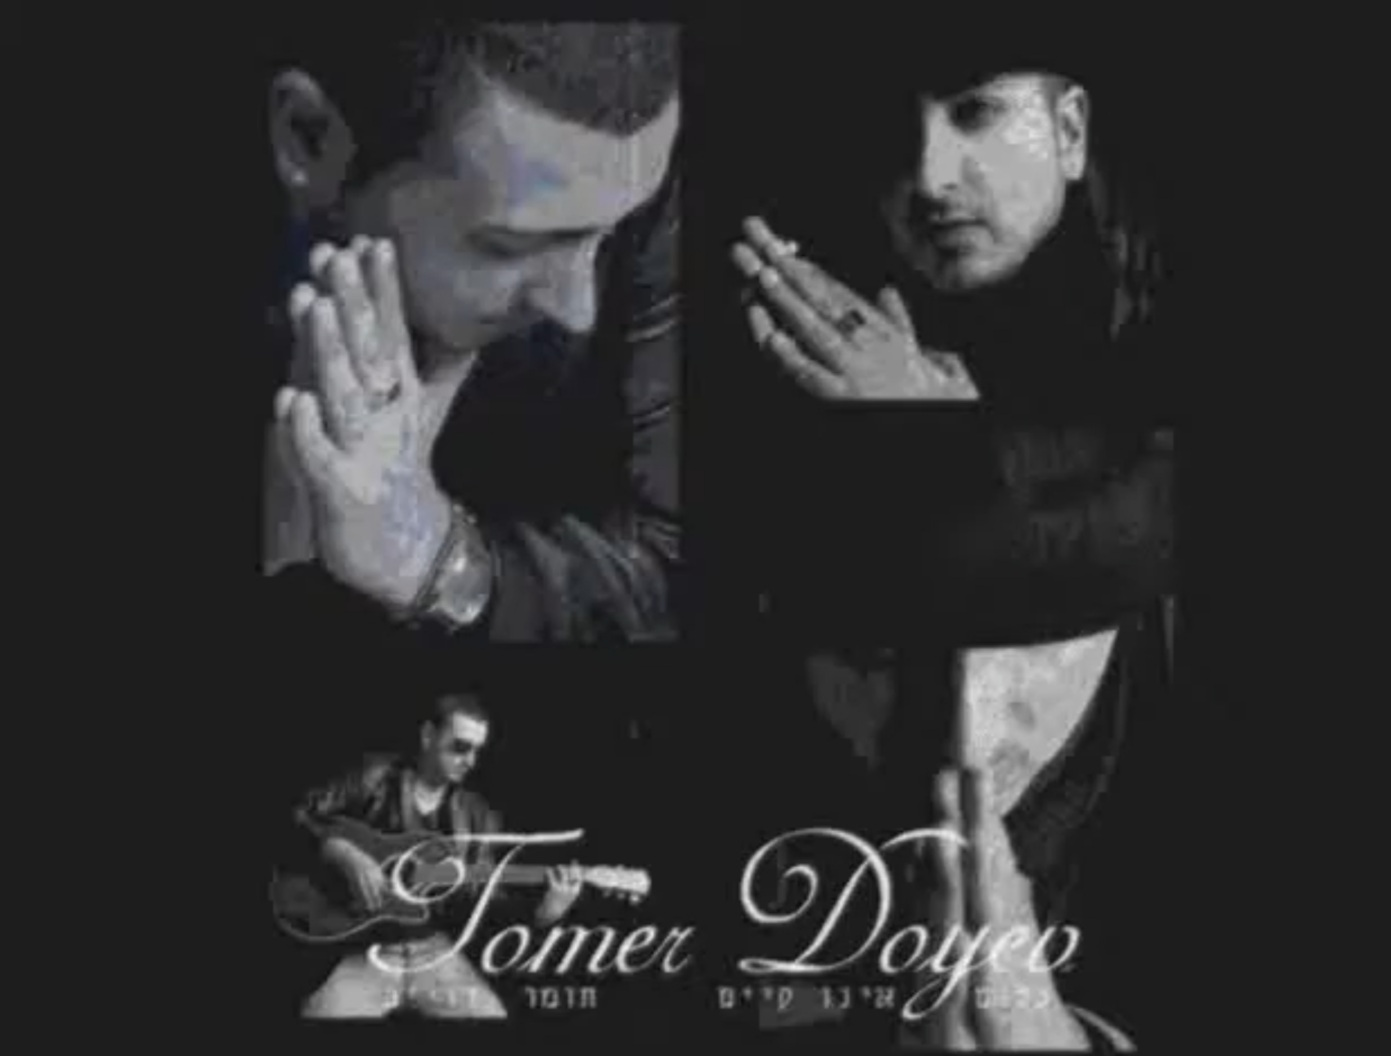 Tomer Douiev Produces Hip and Moving Fusions of R&B and Ballad